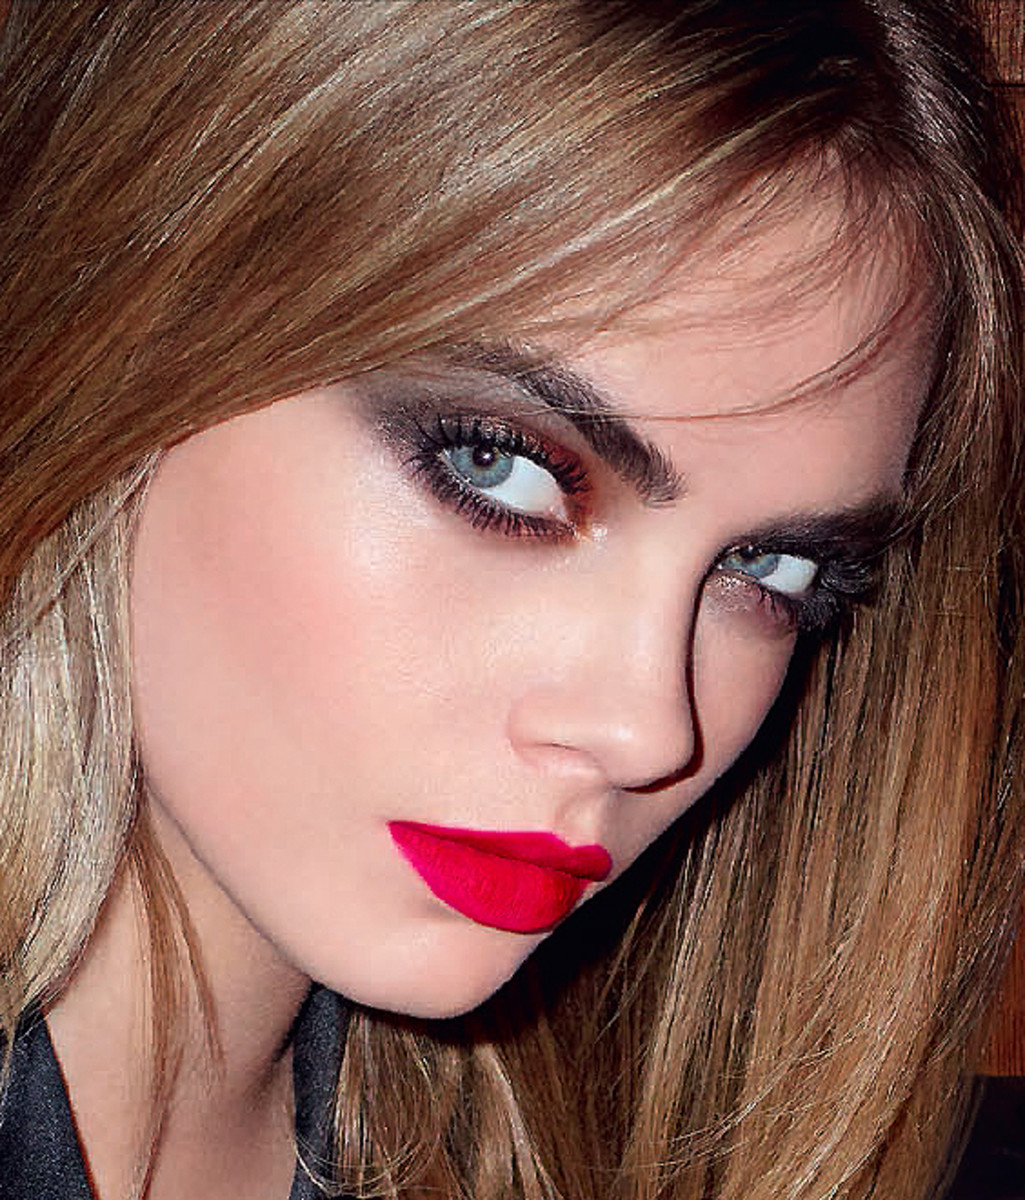 YSL Fall 2014 makeup_Cara Delevingne close-up